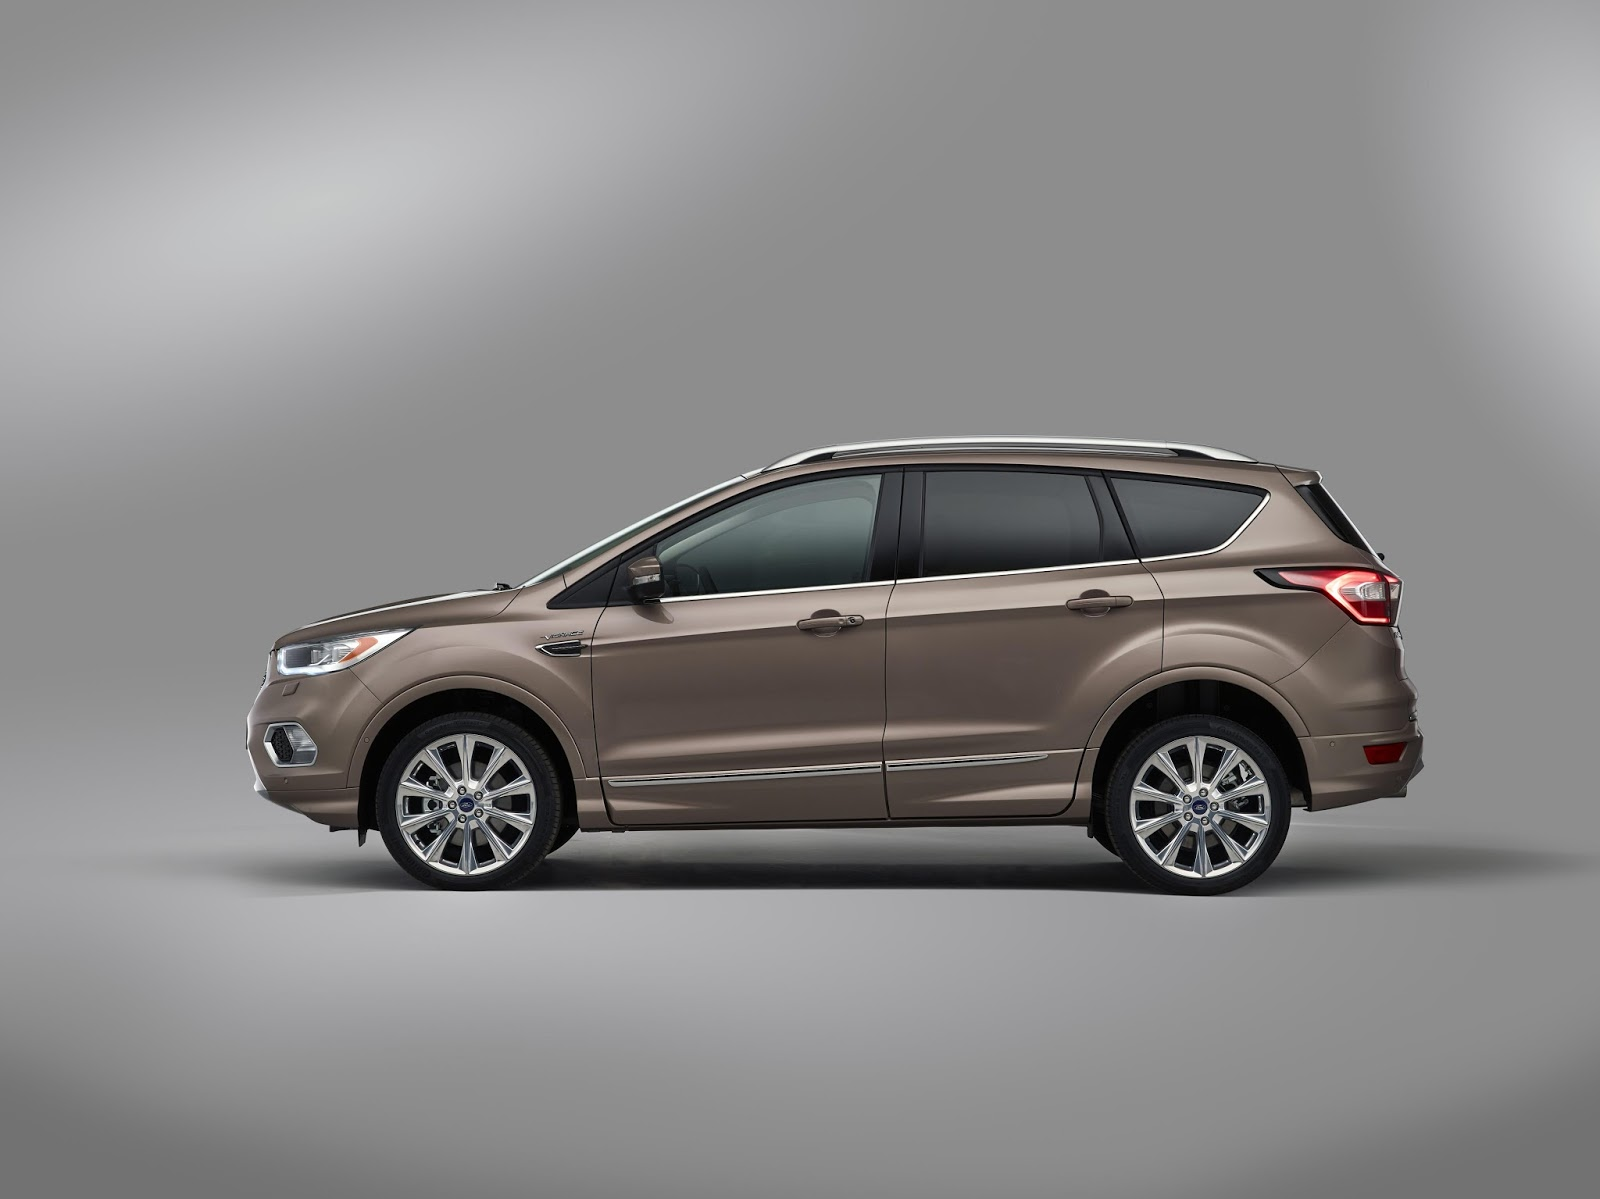 Ford kuga vignale production model confirmed upscale suv available to order later this year